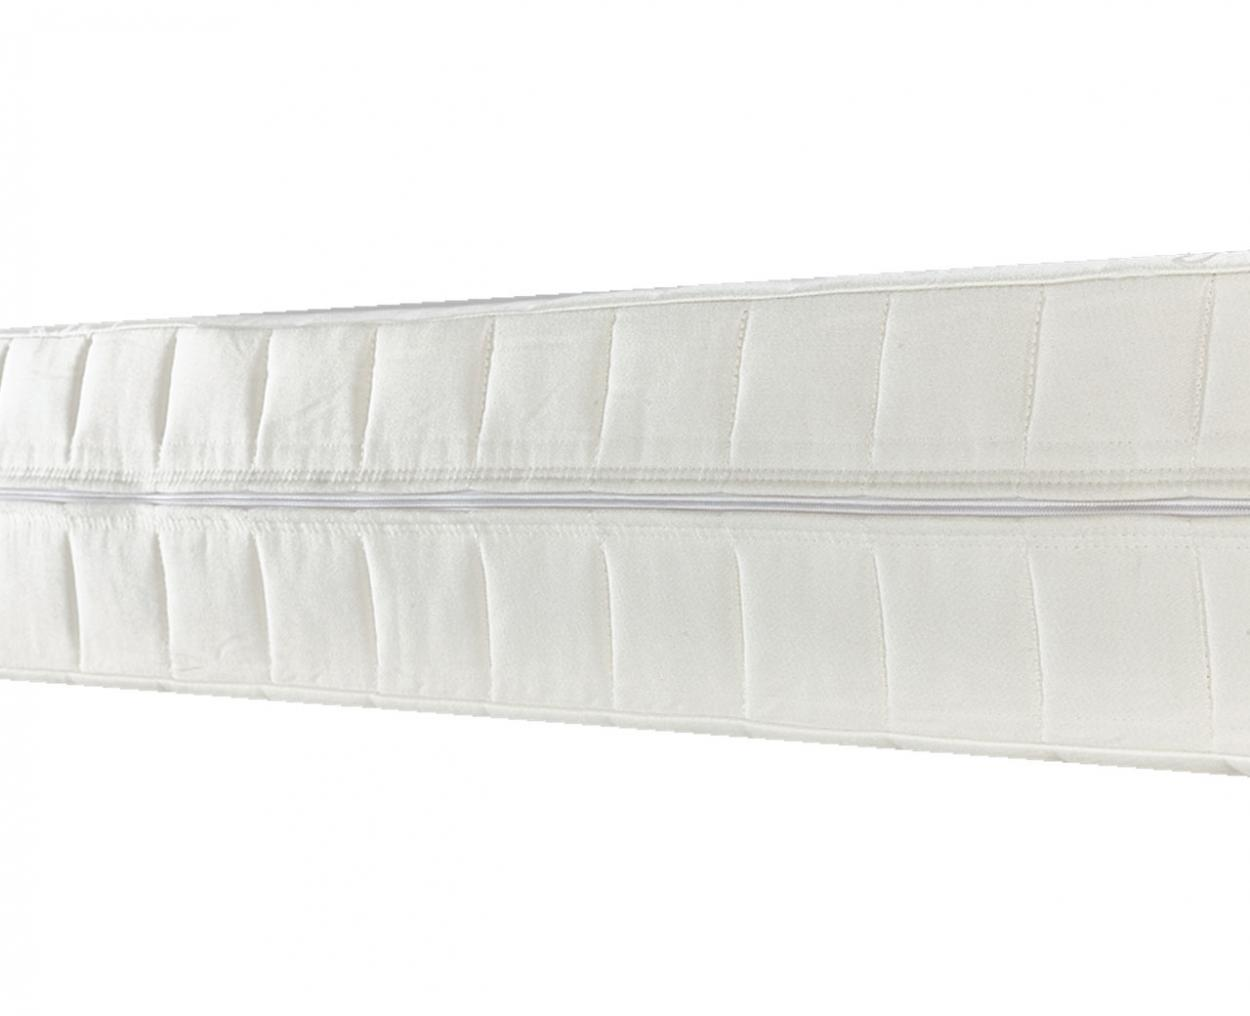 CandiaStrom - Mattress MEDITERRANEAN TOUCH  - NATUREZZA COLLECTION -  Side View